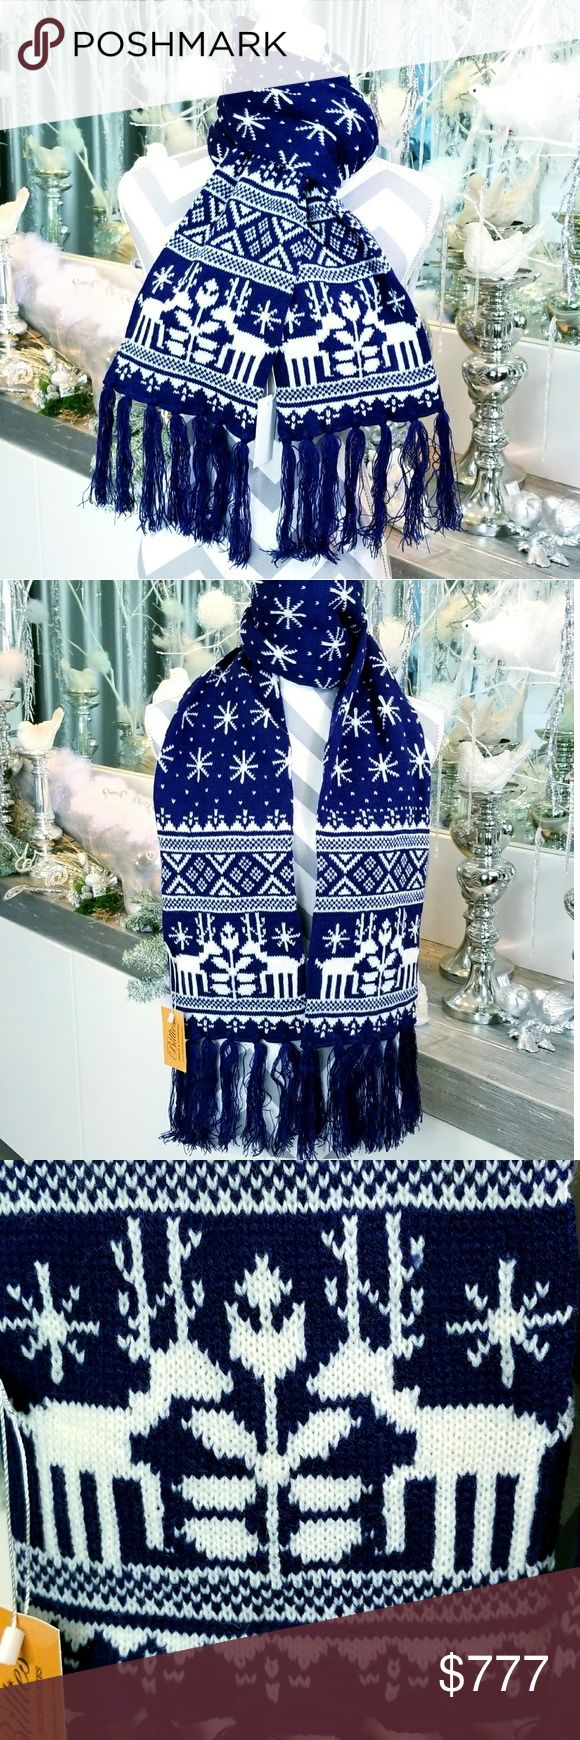 NAVY BLUE WINTER PRINT SCARF WITH FRINGE BRAND NEW  Boutique item  Price is firm   A must have for the holiday/winter season, this adorable and warm winter knit scarf featuring a joyful snowflake and reindeer print with fringed details! Make this scarf a gift to yourself or someone you care for!  NAVY BLUE and white  Color vary per screen 100% acrylic   christmas gift present stocking stuffer fall winter knittted knits scarf scarves accessoires deers snowflake hat gloves scarfs warm cozy…